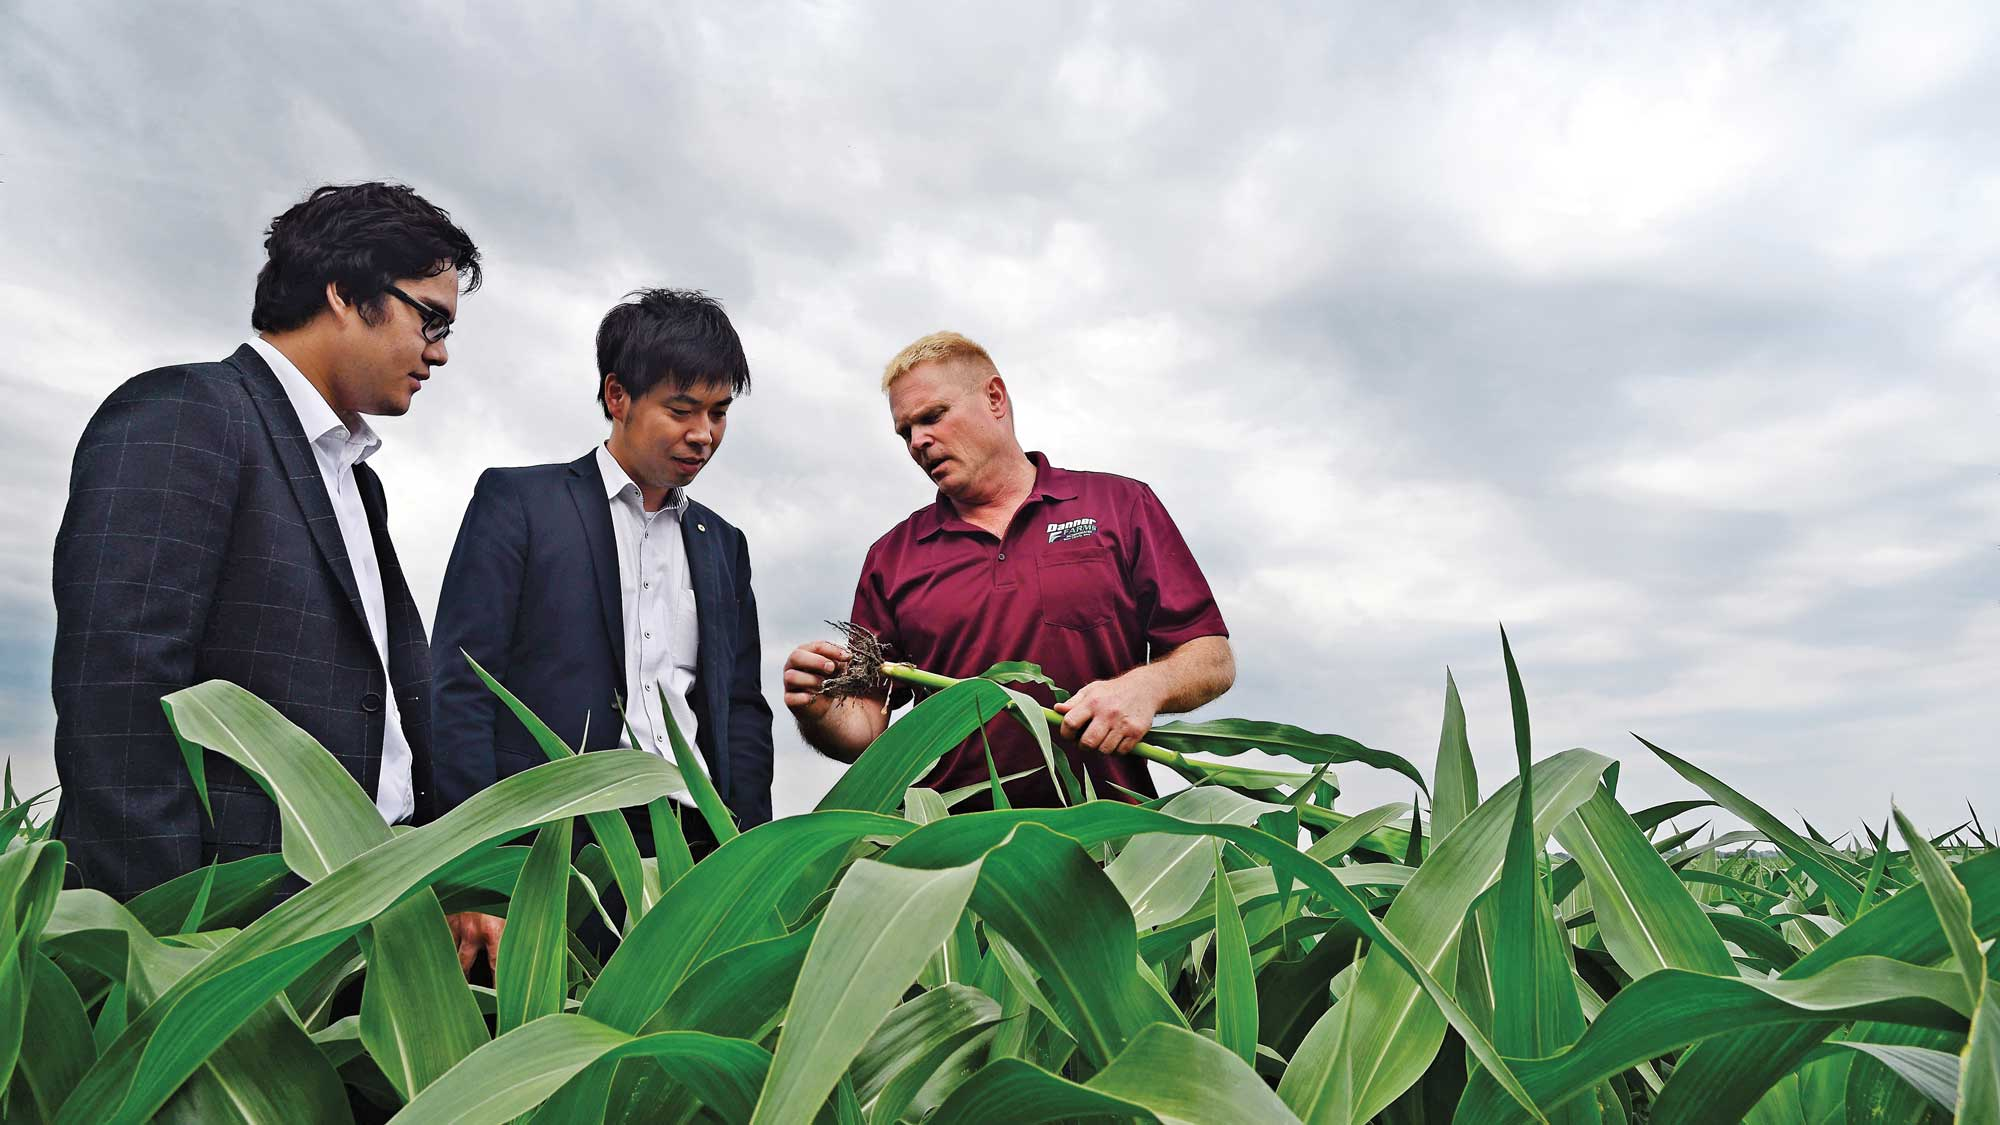 Iowa corn grower and customers from Japan Corn Starch Co. discuss identity-preserved corn in a corn field